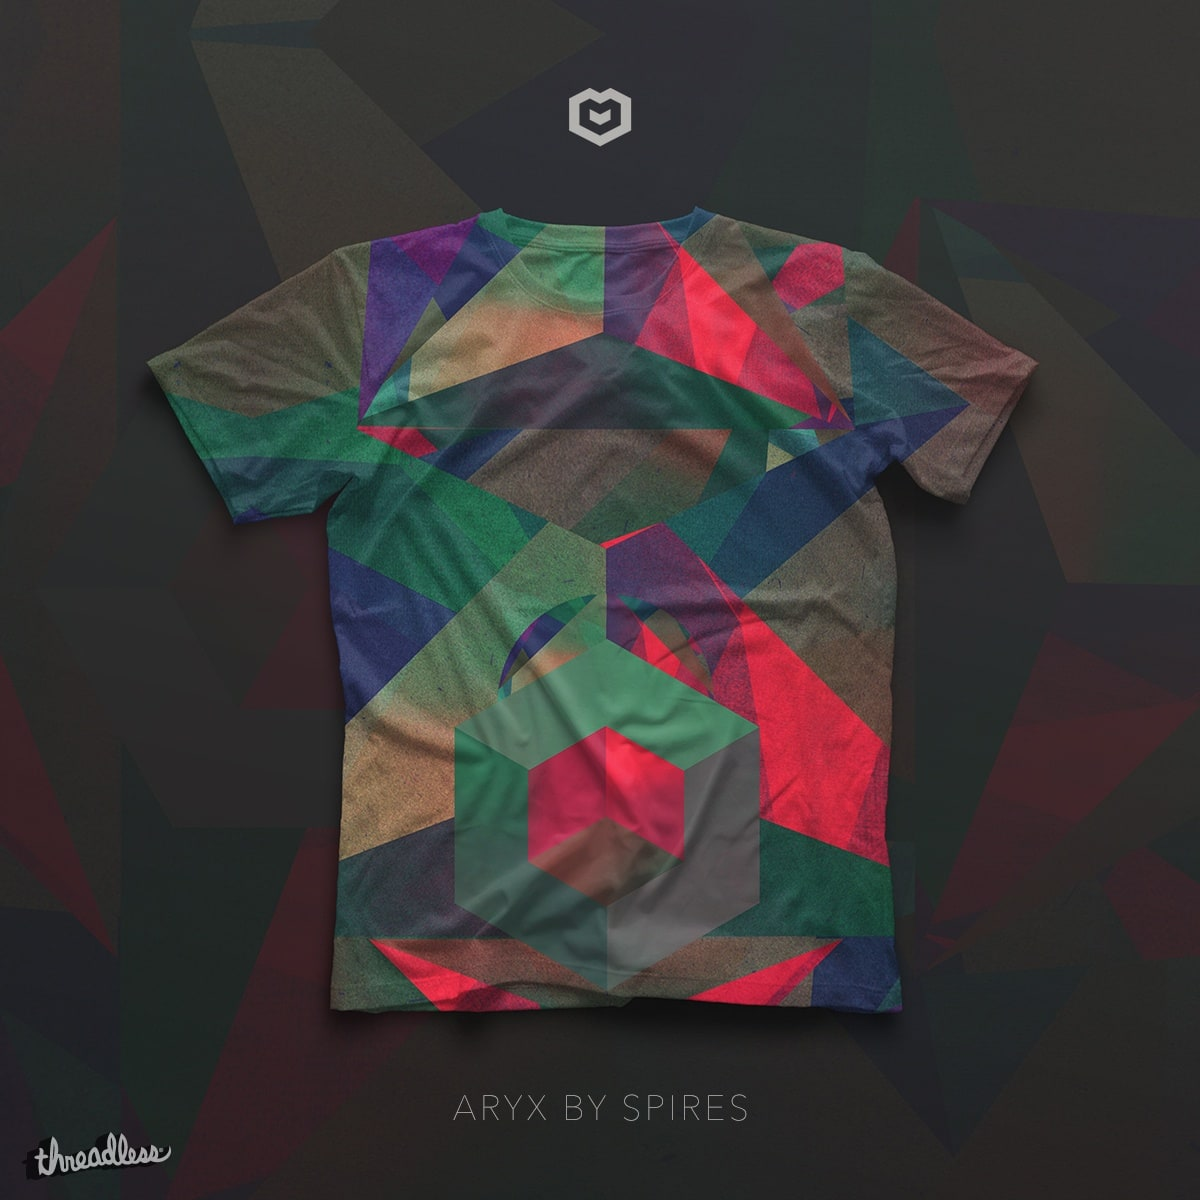 aryx by spires on Threadless